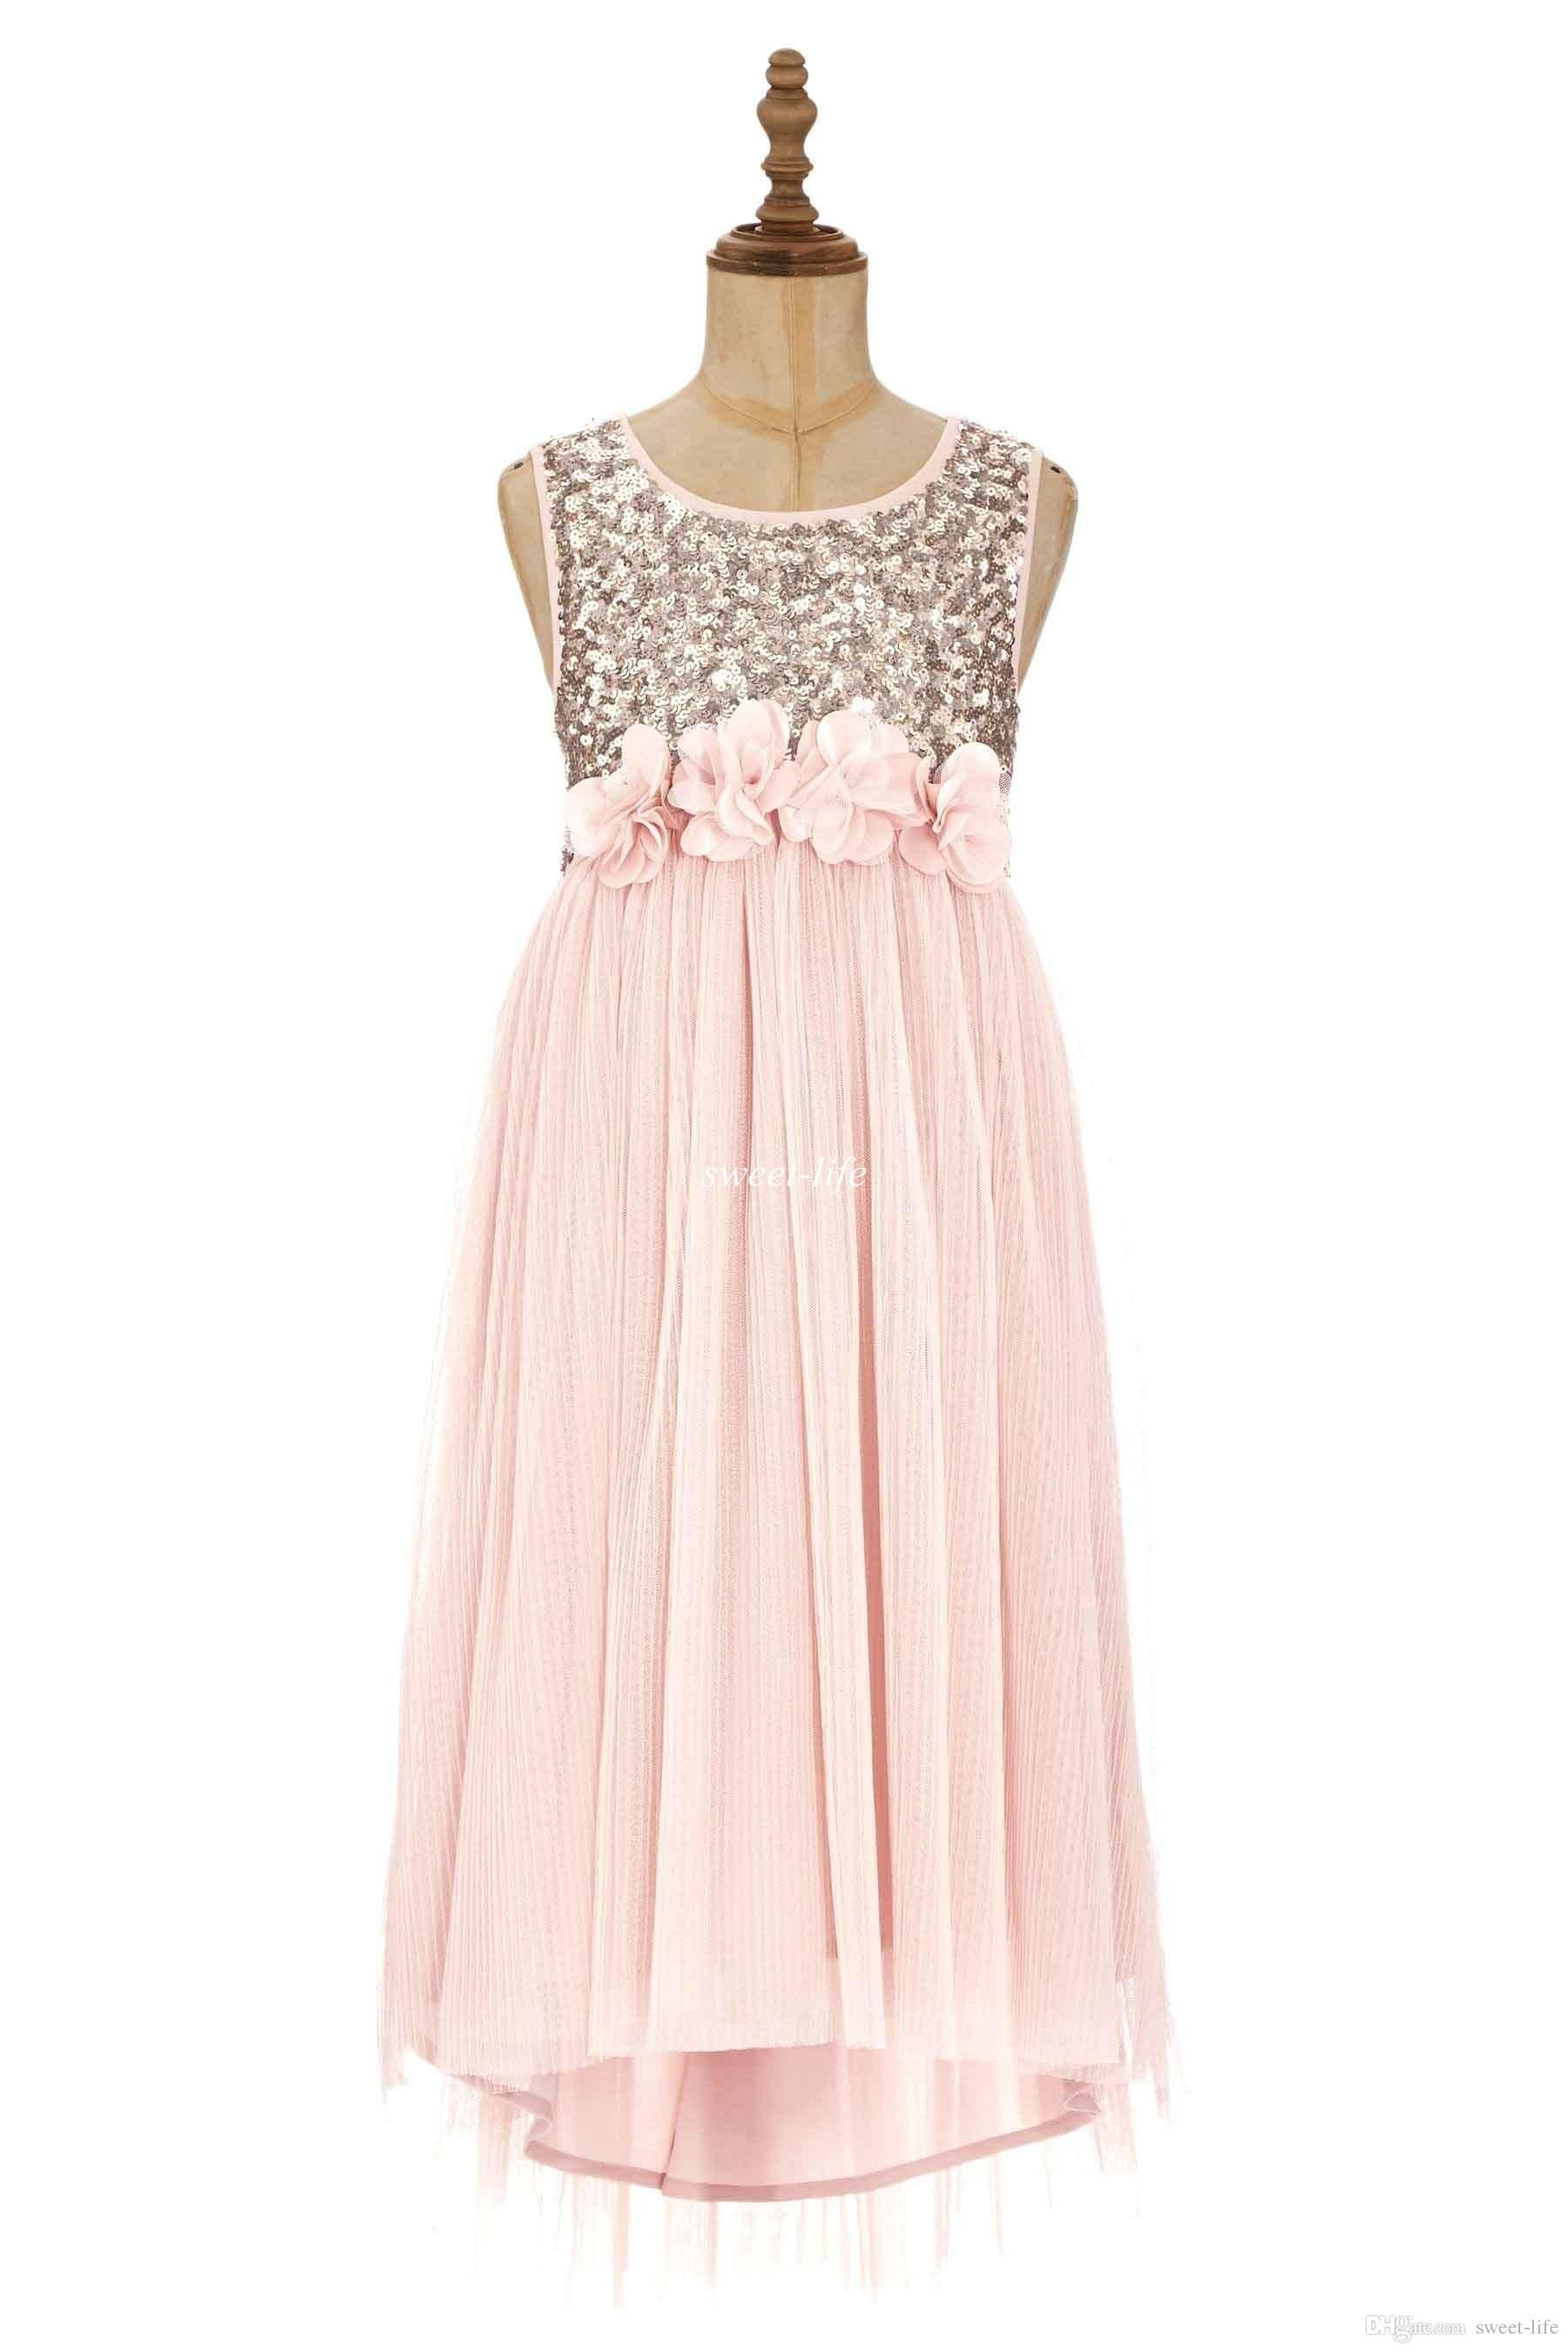 The baby girls dresses which match the flowers 2015 blush flower 2015 blush flower girls dresses gold sequins hand made flower sash tea length tulle jewel a line kids formal dress junior bridesmaid dress ombrellifo Gallery